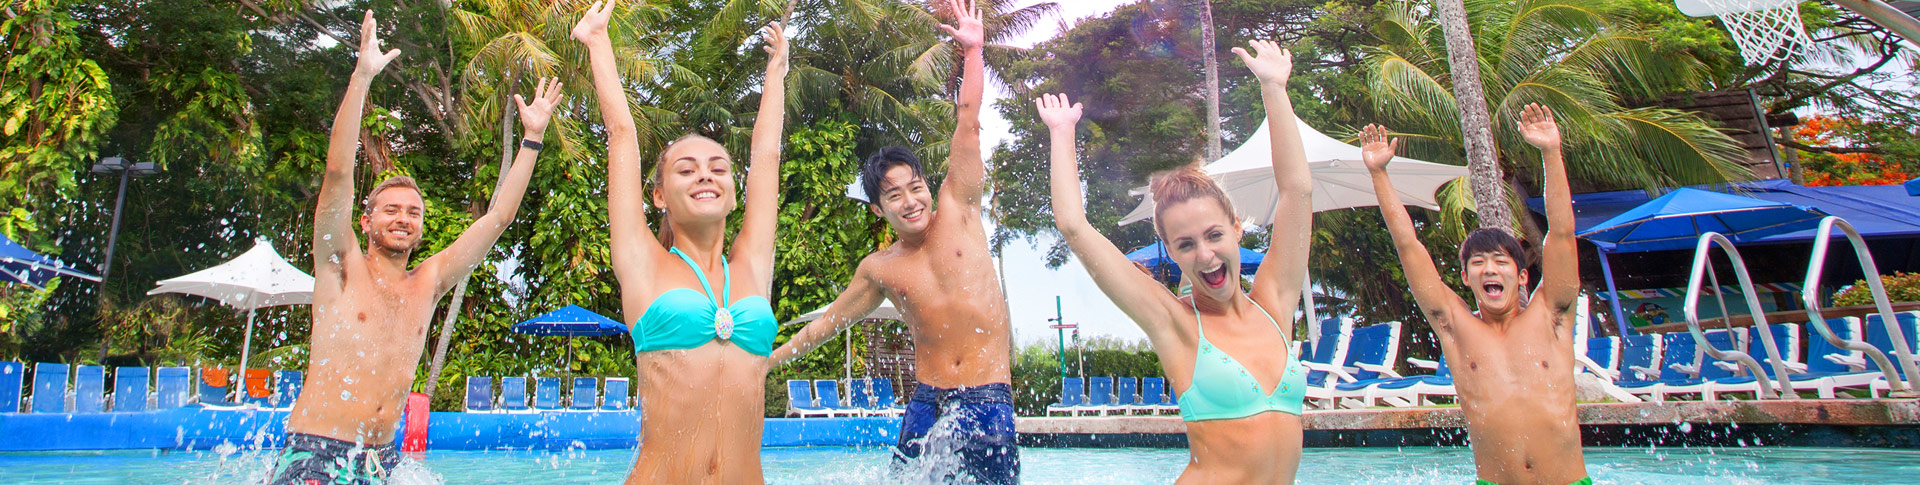 Fun Current Events At Our Guam Resort